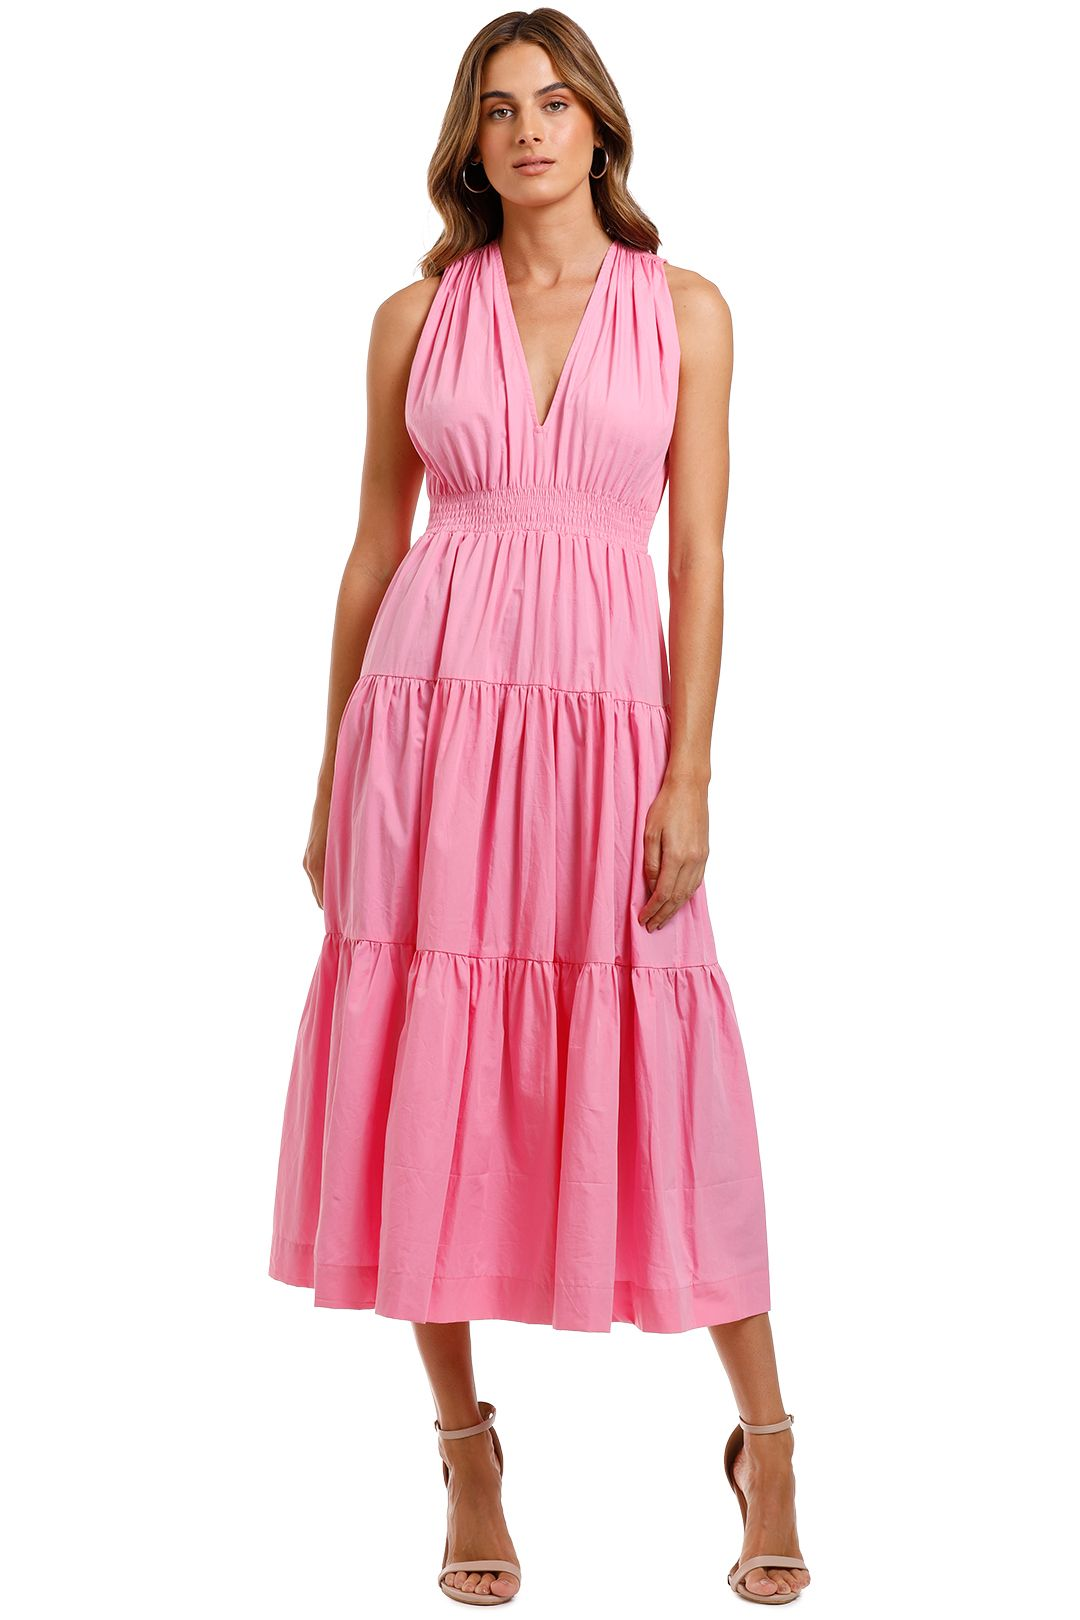 SWF Tiered Maxi dress Pink v neck